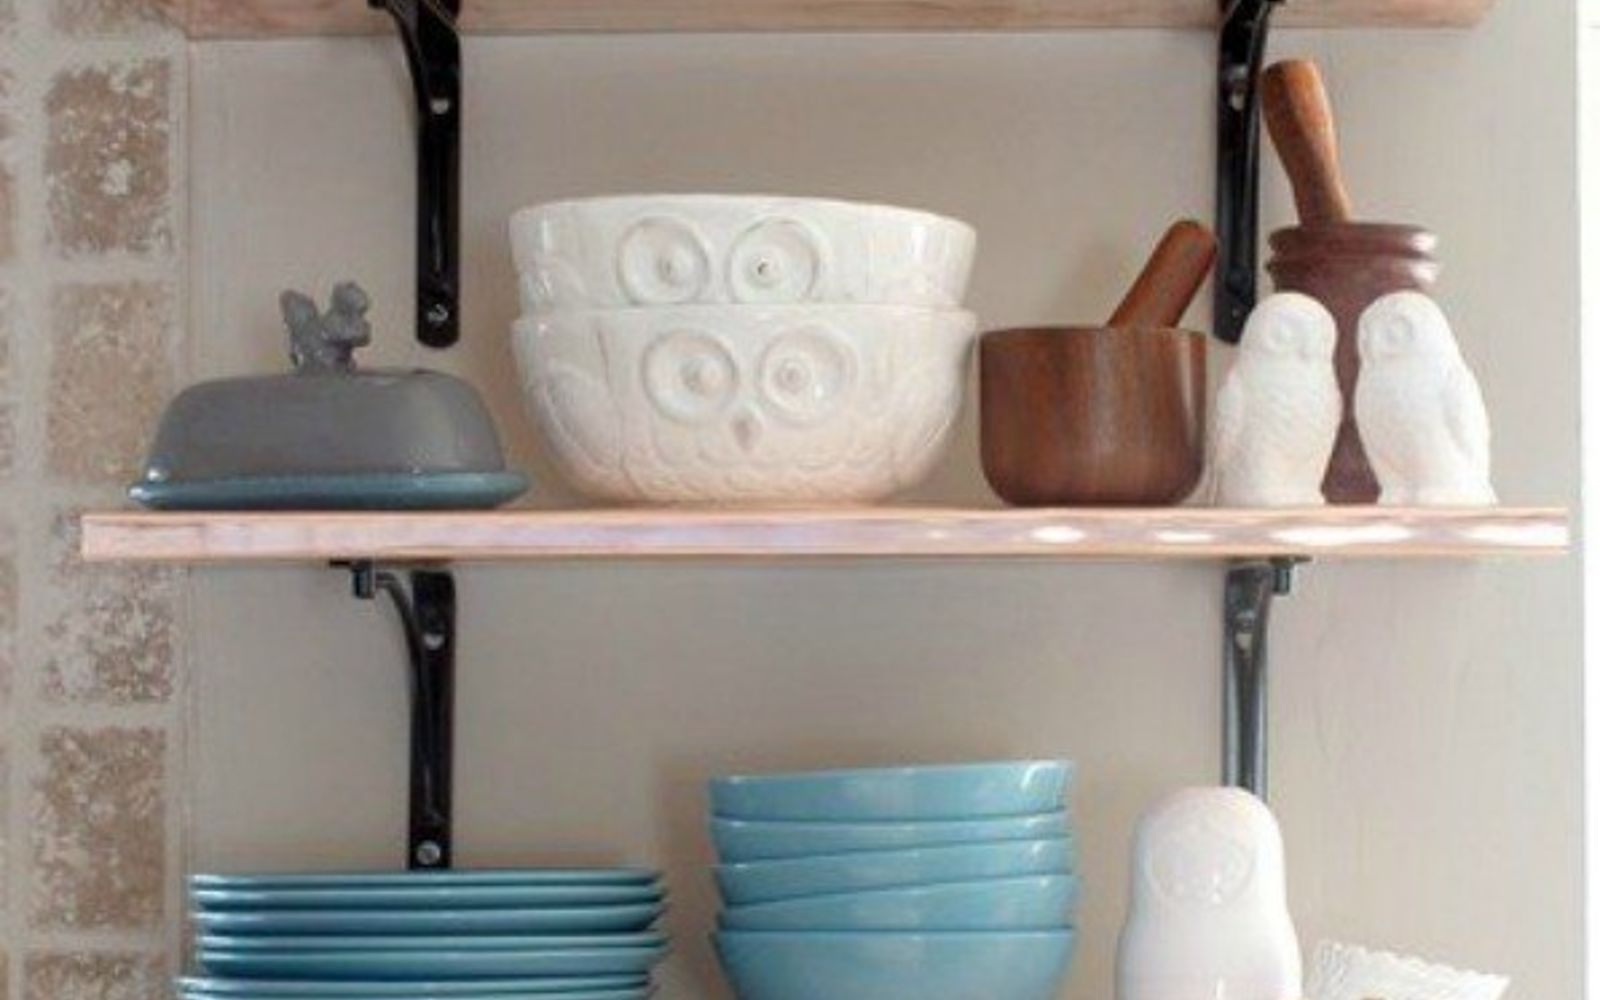 Tips For Open Shelving In The Kitchen: 15 Clever Ways To Add More Kitchen Storage Space With Open